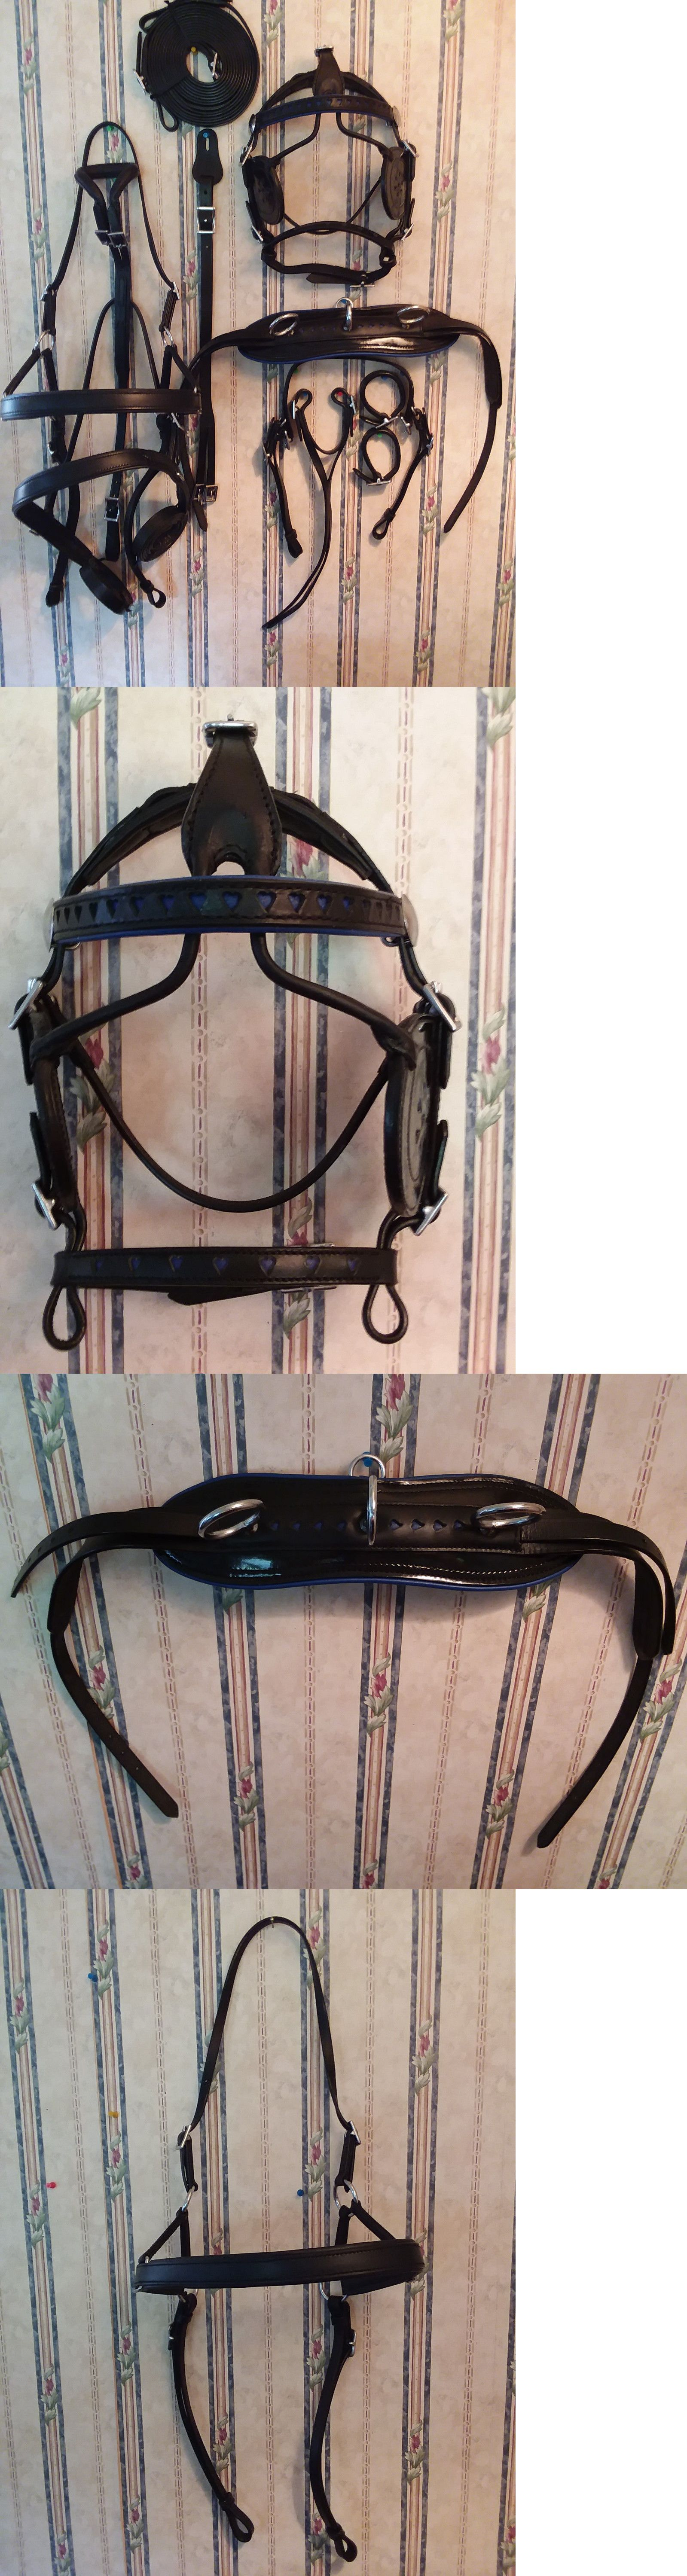 medium resolution of driving equipment 85178 black leather shetland pony mini miniature driving horse harness w blue hearts buy it now only 149 95 on ebay driving